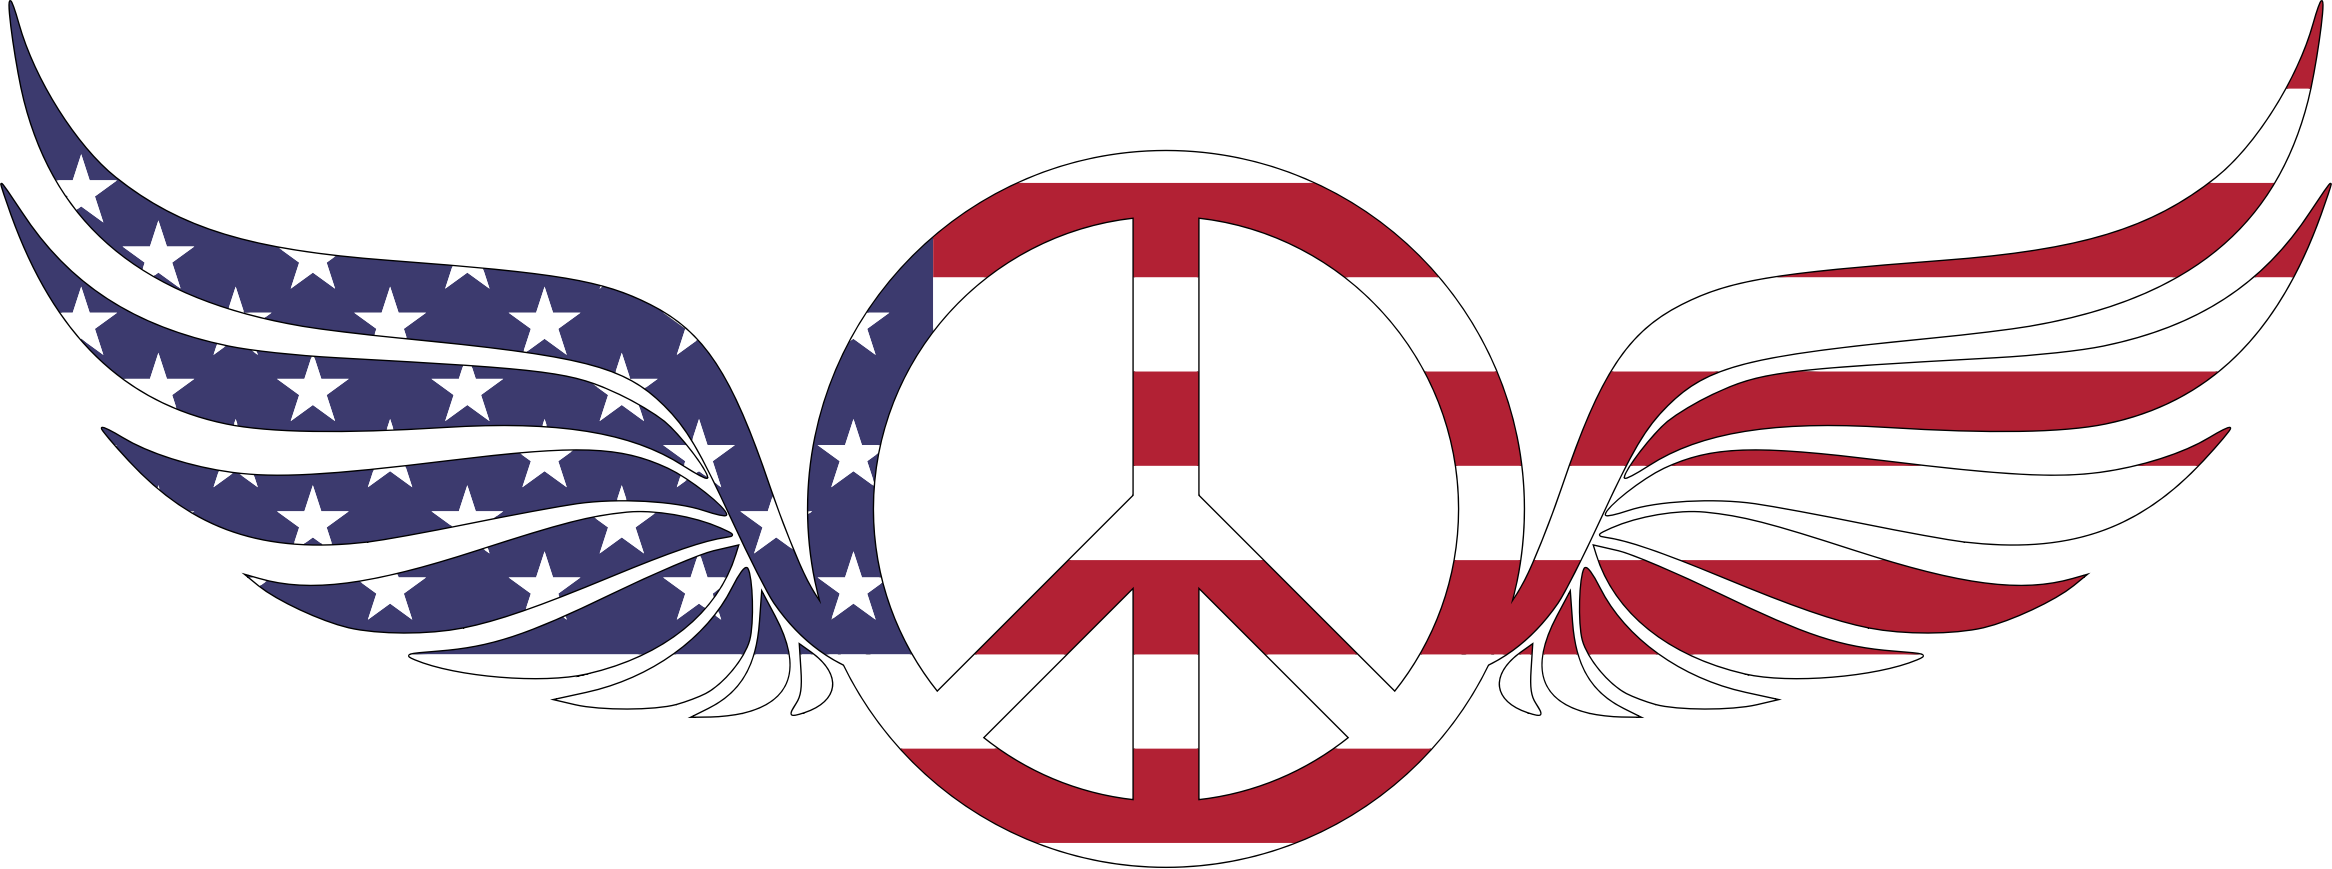 American Peace Sign With Wings With Stroke by GDJ